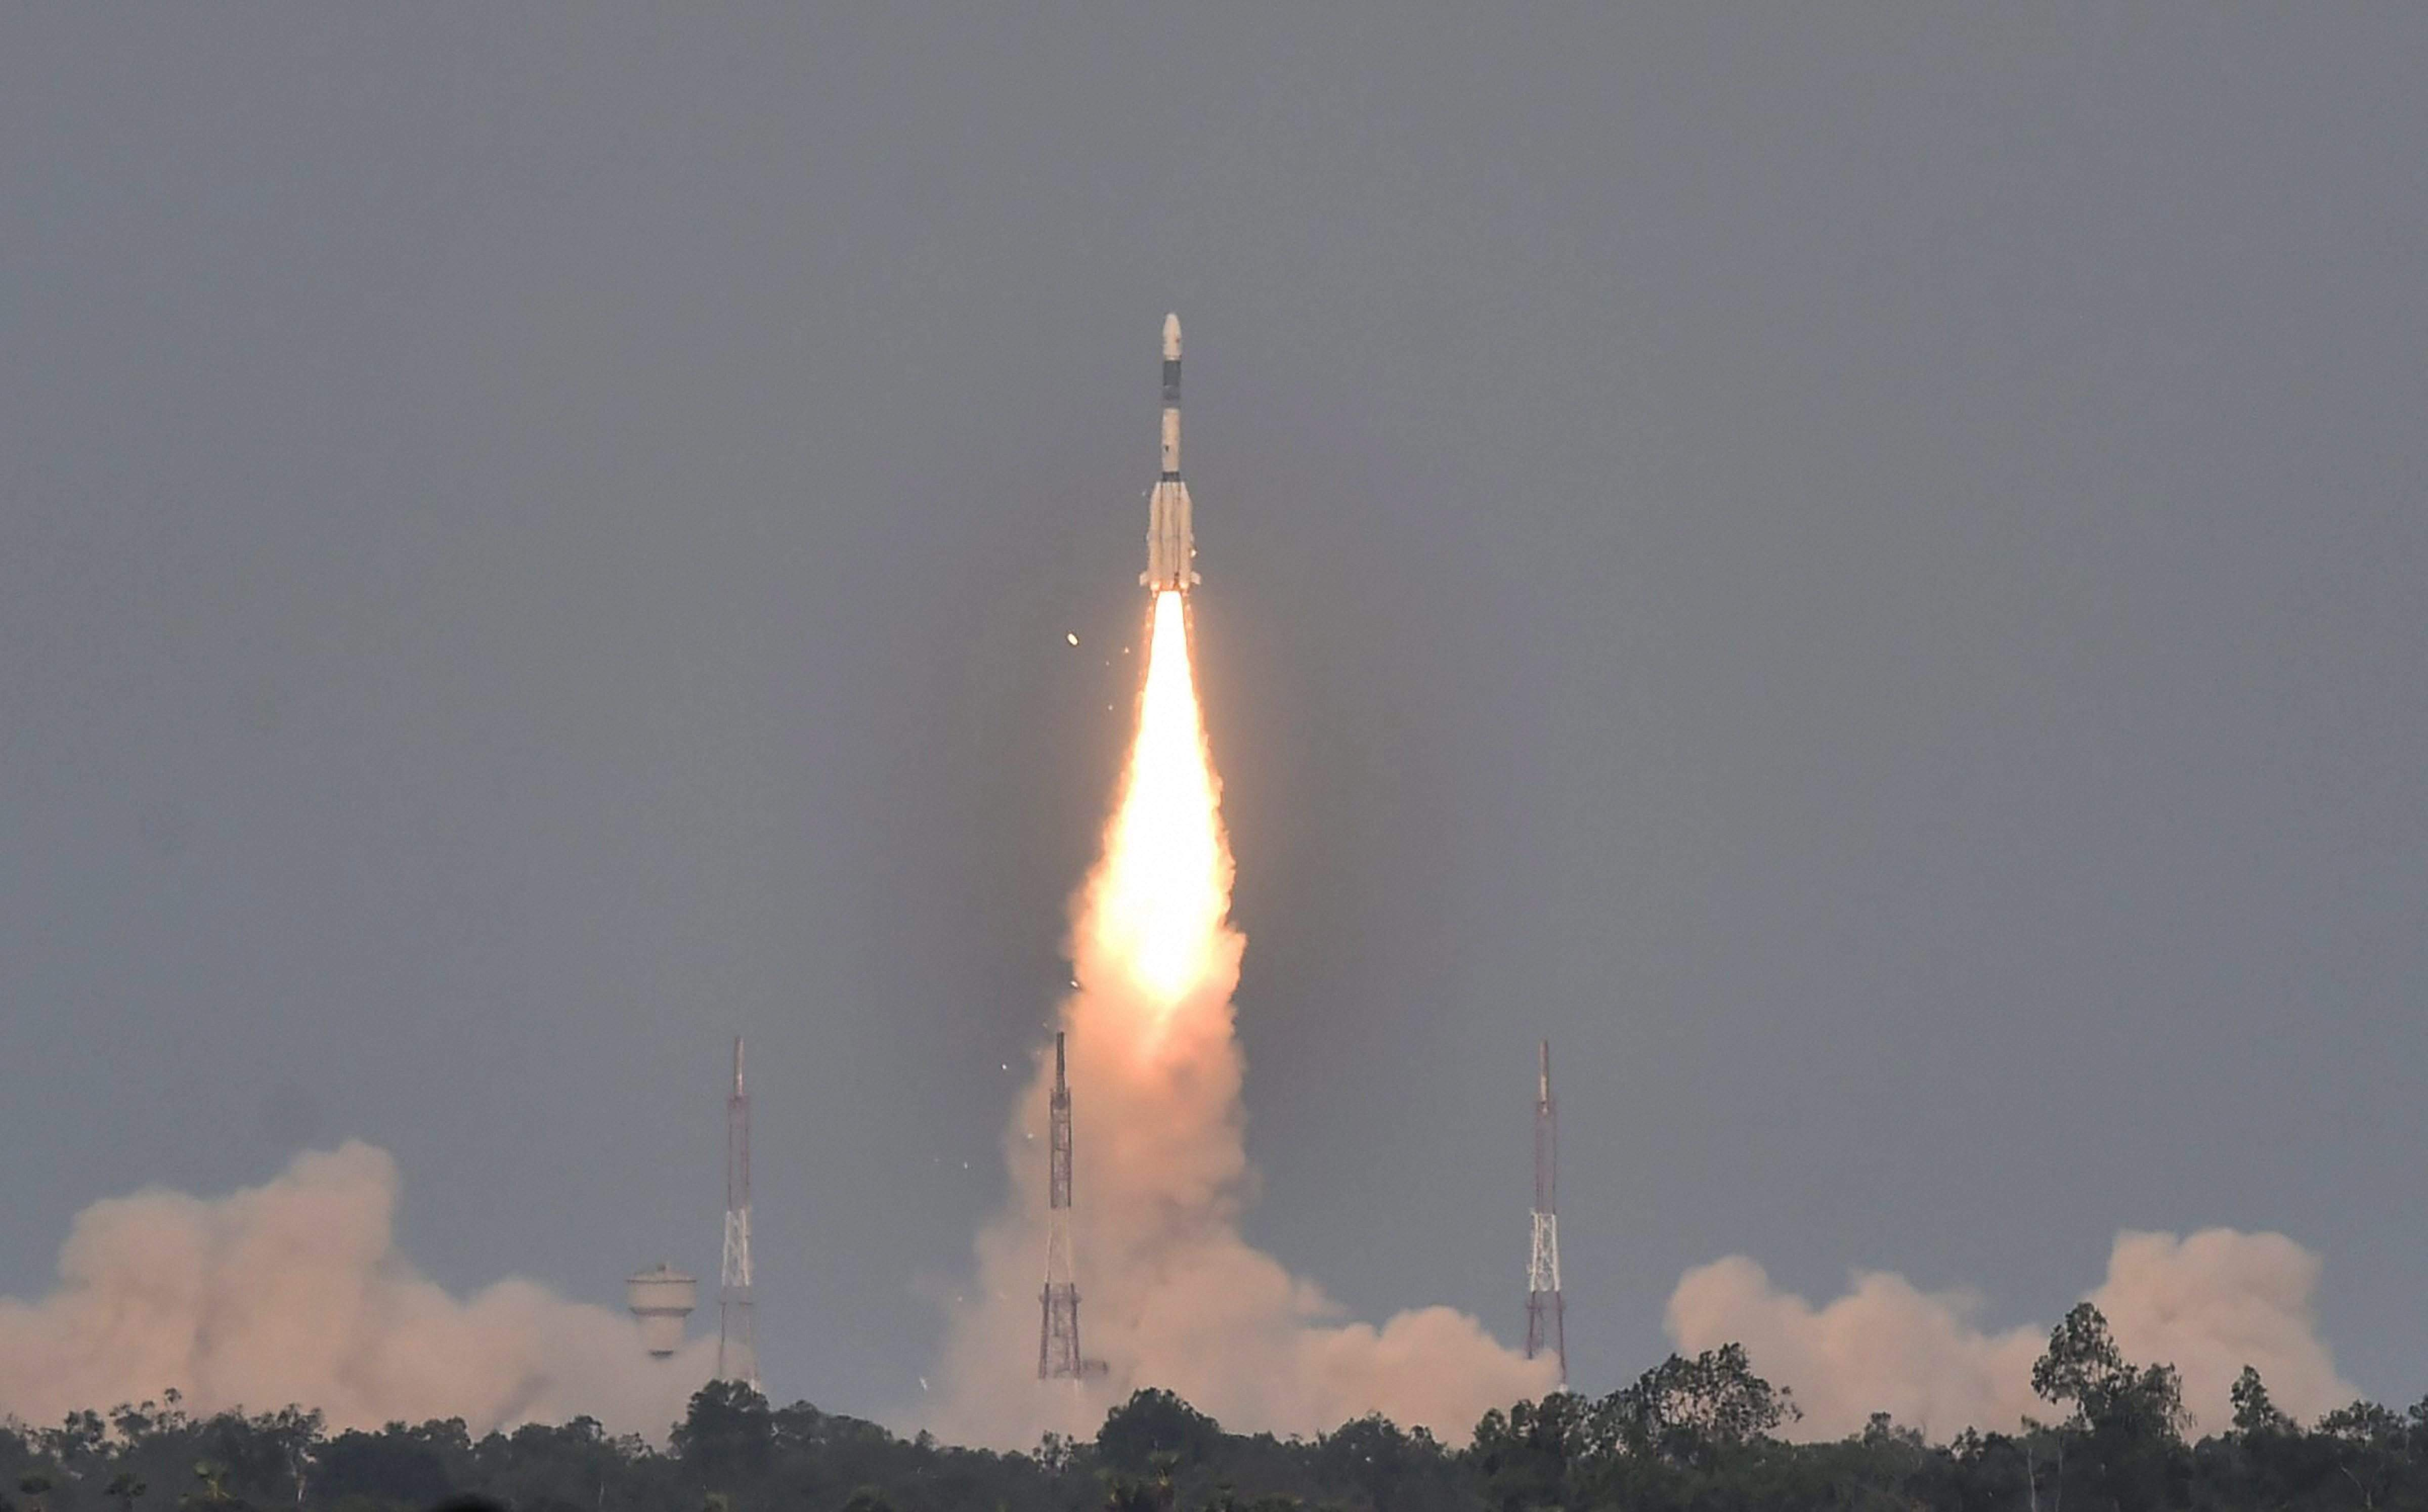 Funds shortage may delay crucial ISRO projects